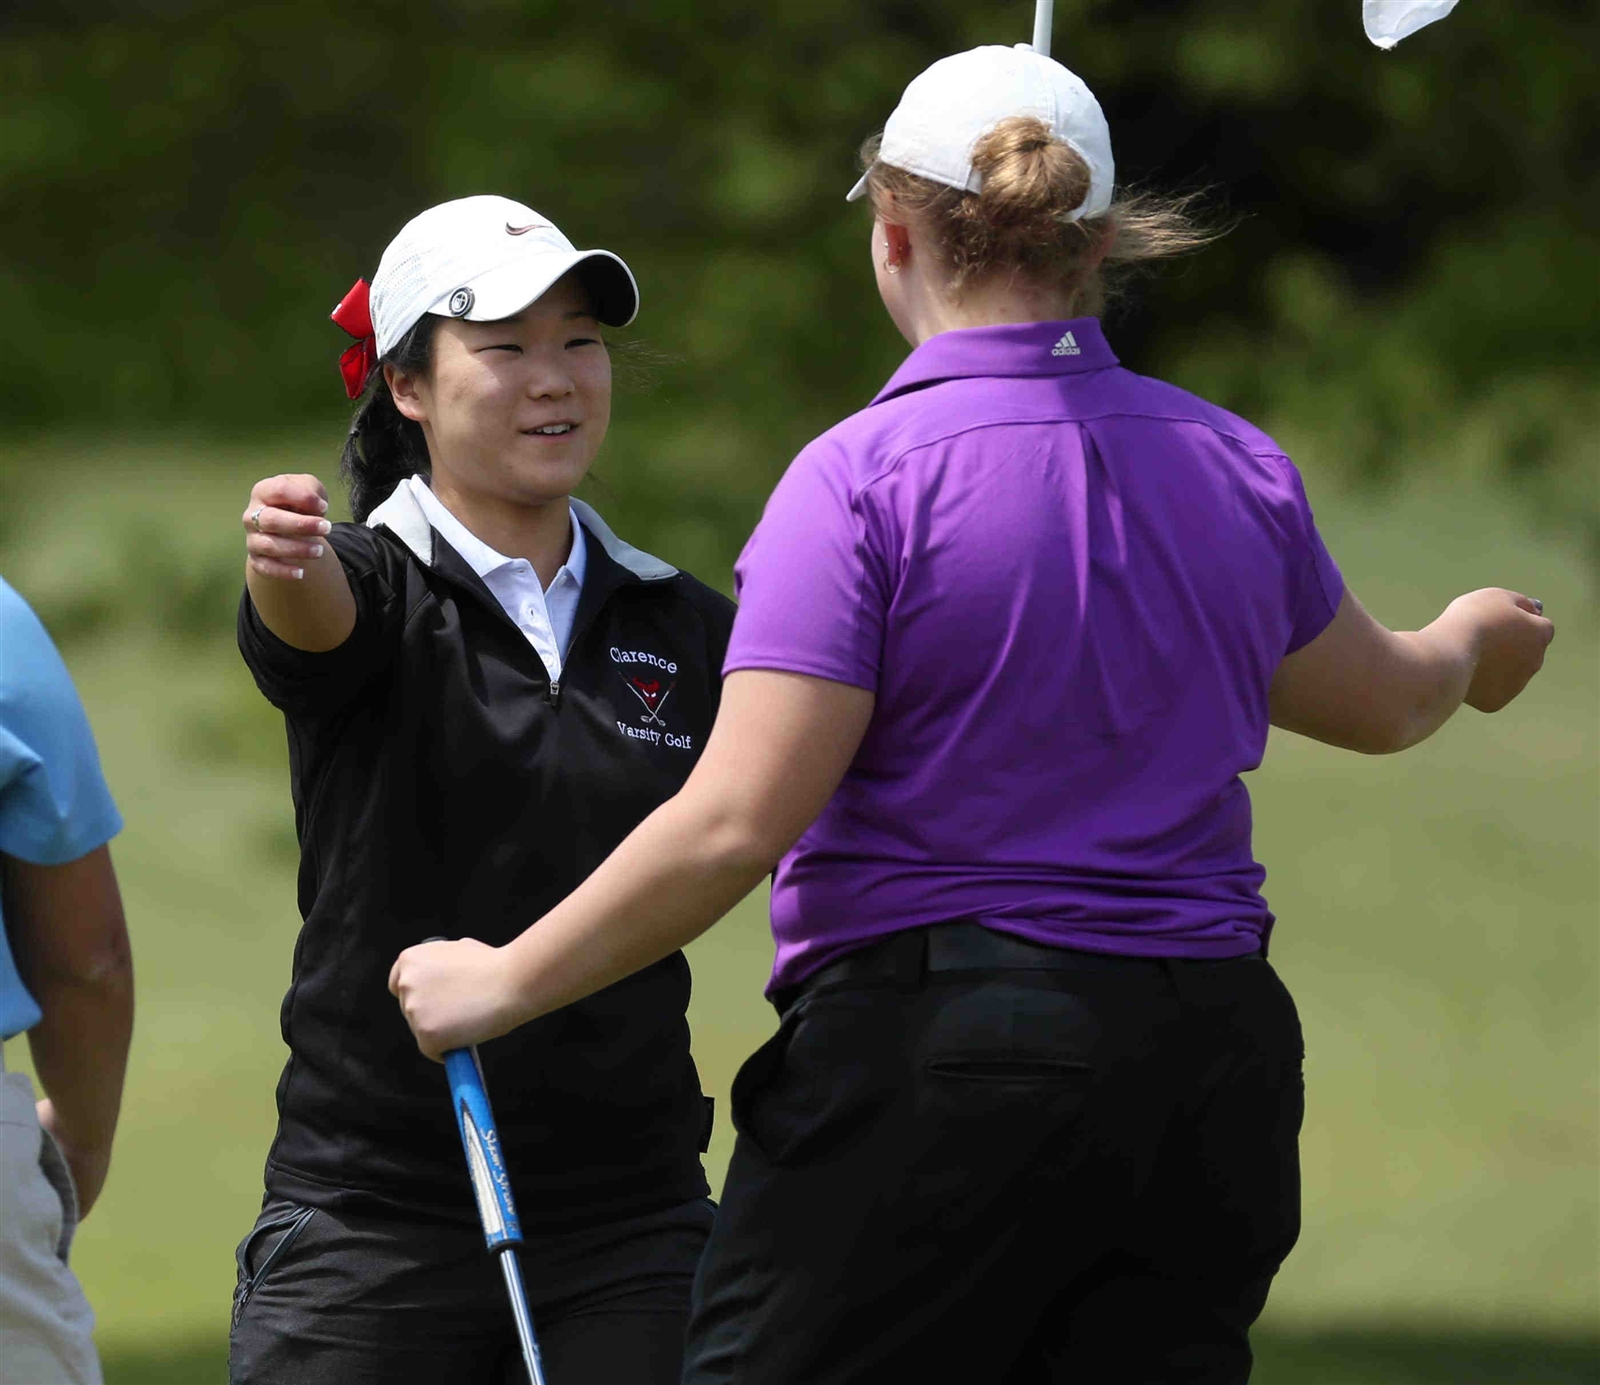 Clarence's Alexis Kim, left, accepts a congratulatory hug from Southwestern's Marissa DelMonaco after winning the Section VI girls golf championship Wednesday at Gowanda Country Club. (James P. McCoy/Buffalo News)